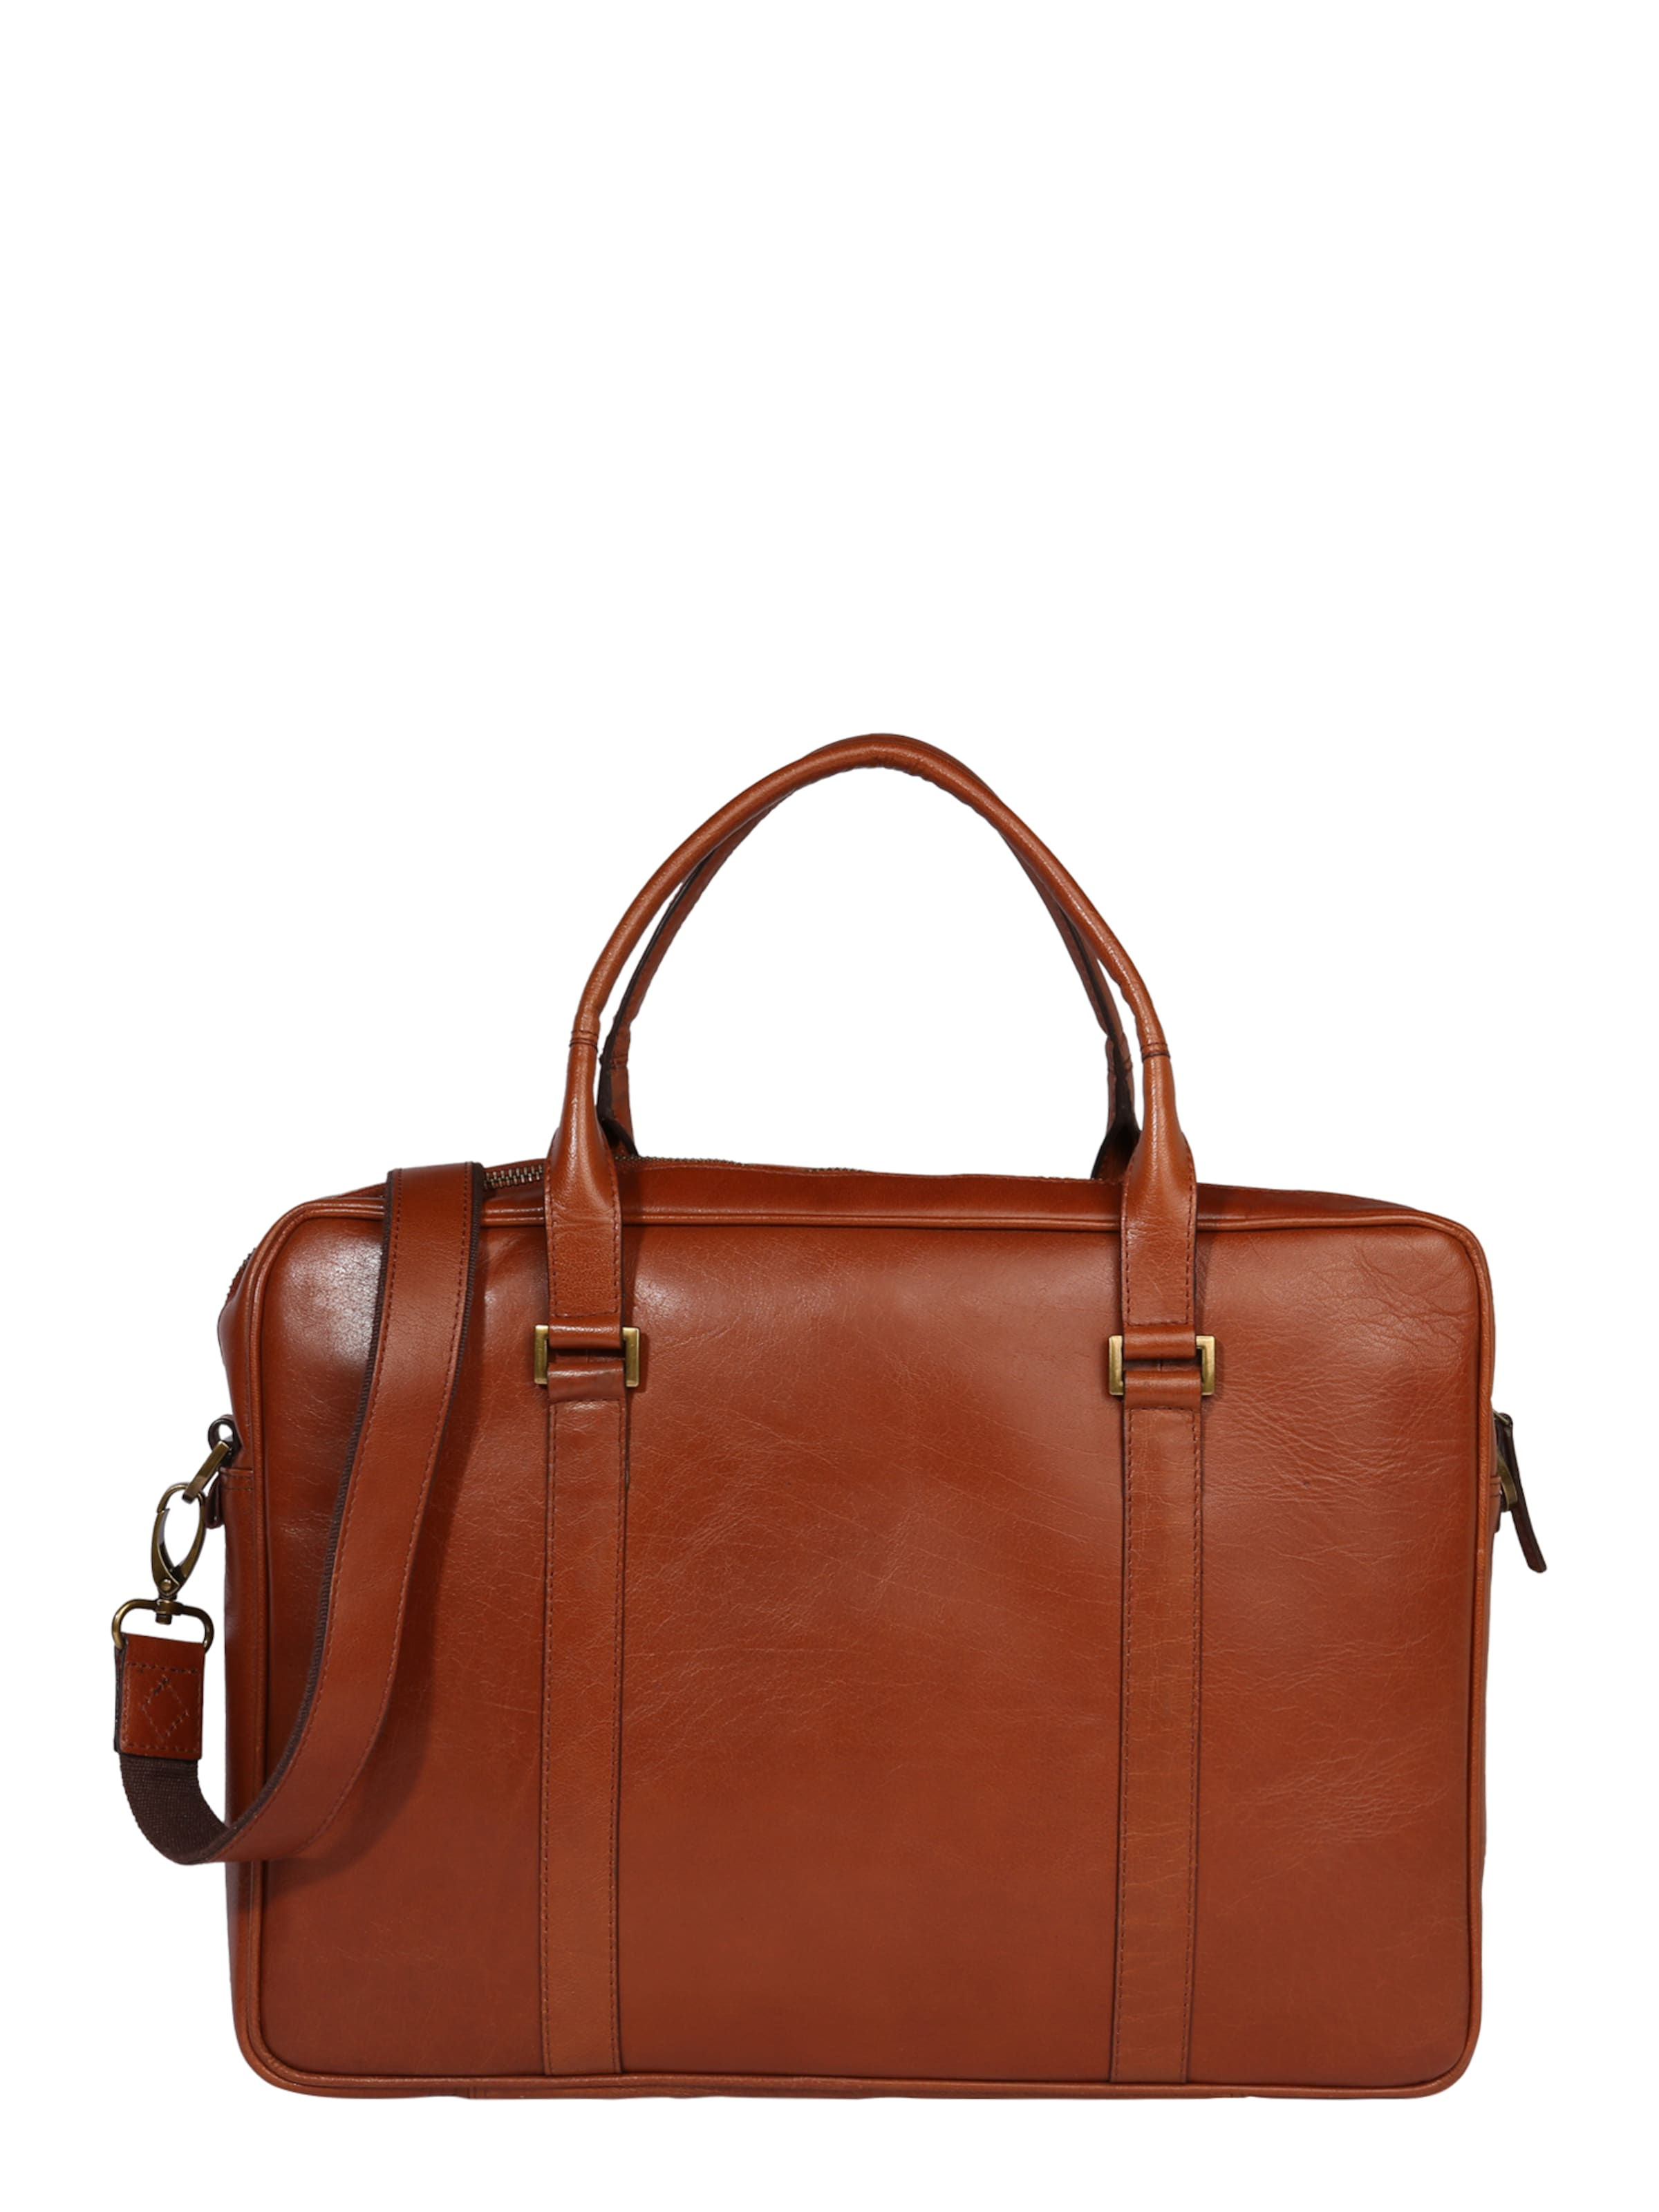 Single ' In 'pioneer Tasche Bag Day Royal Republiq Cognac dWCoeEQxrB